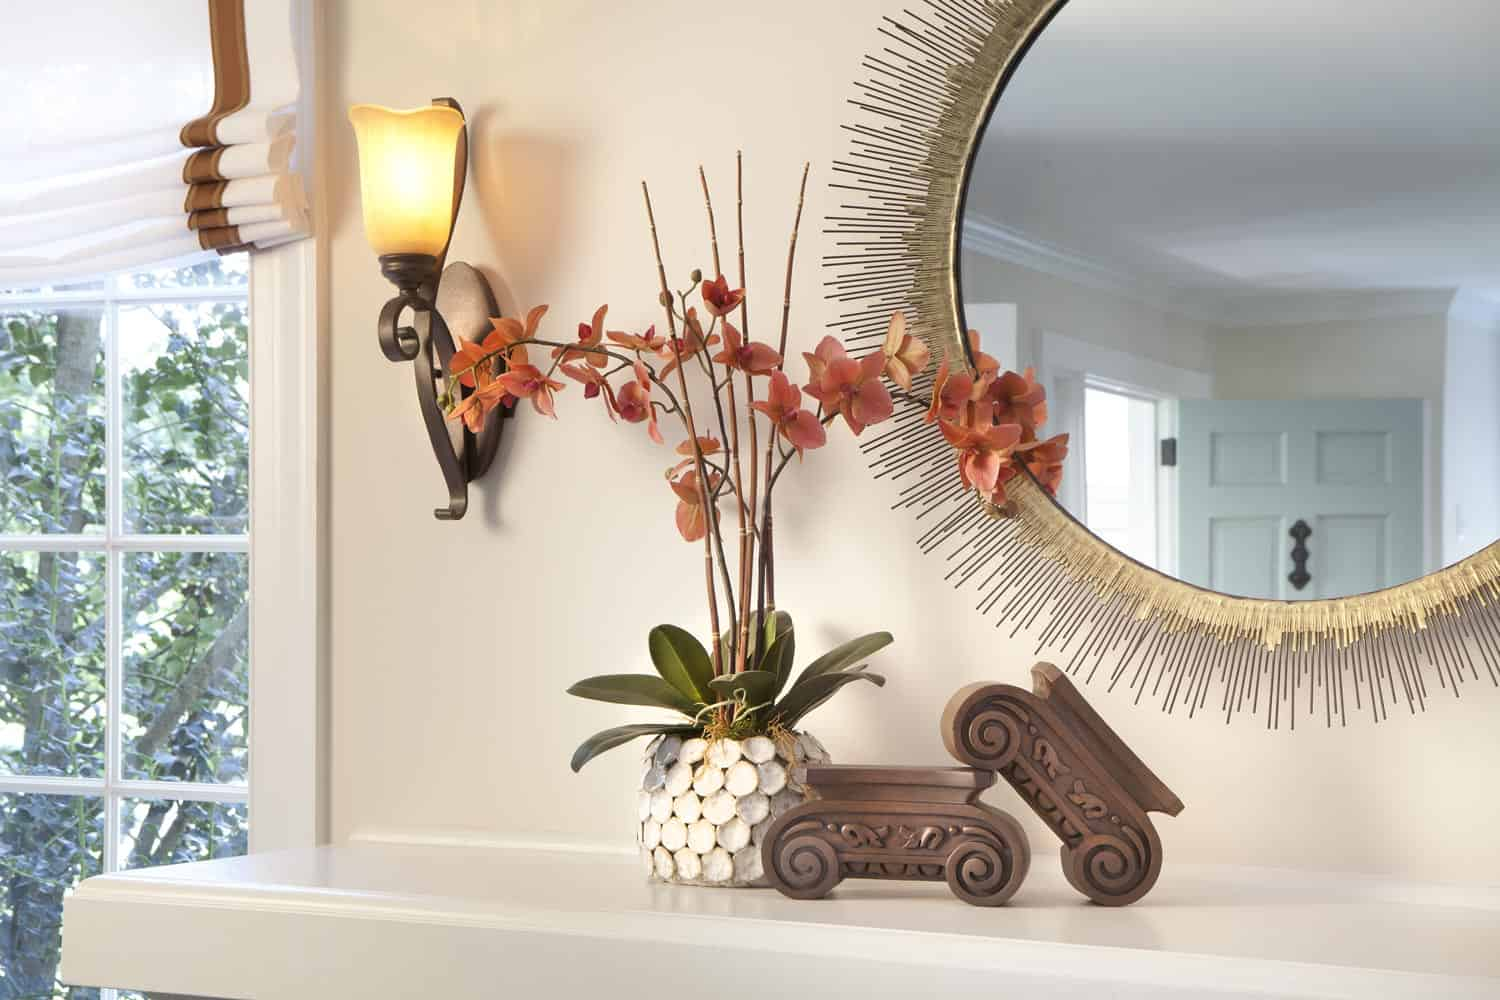 haddon-heights-living-room-decor-accessories